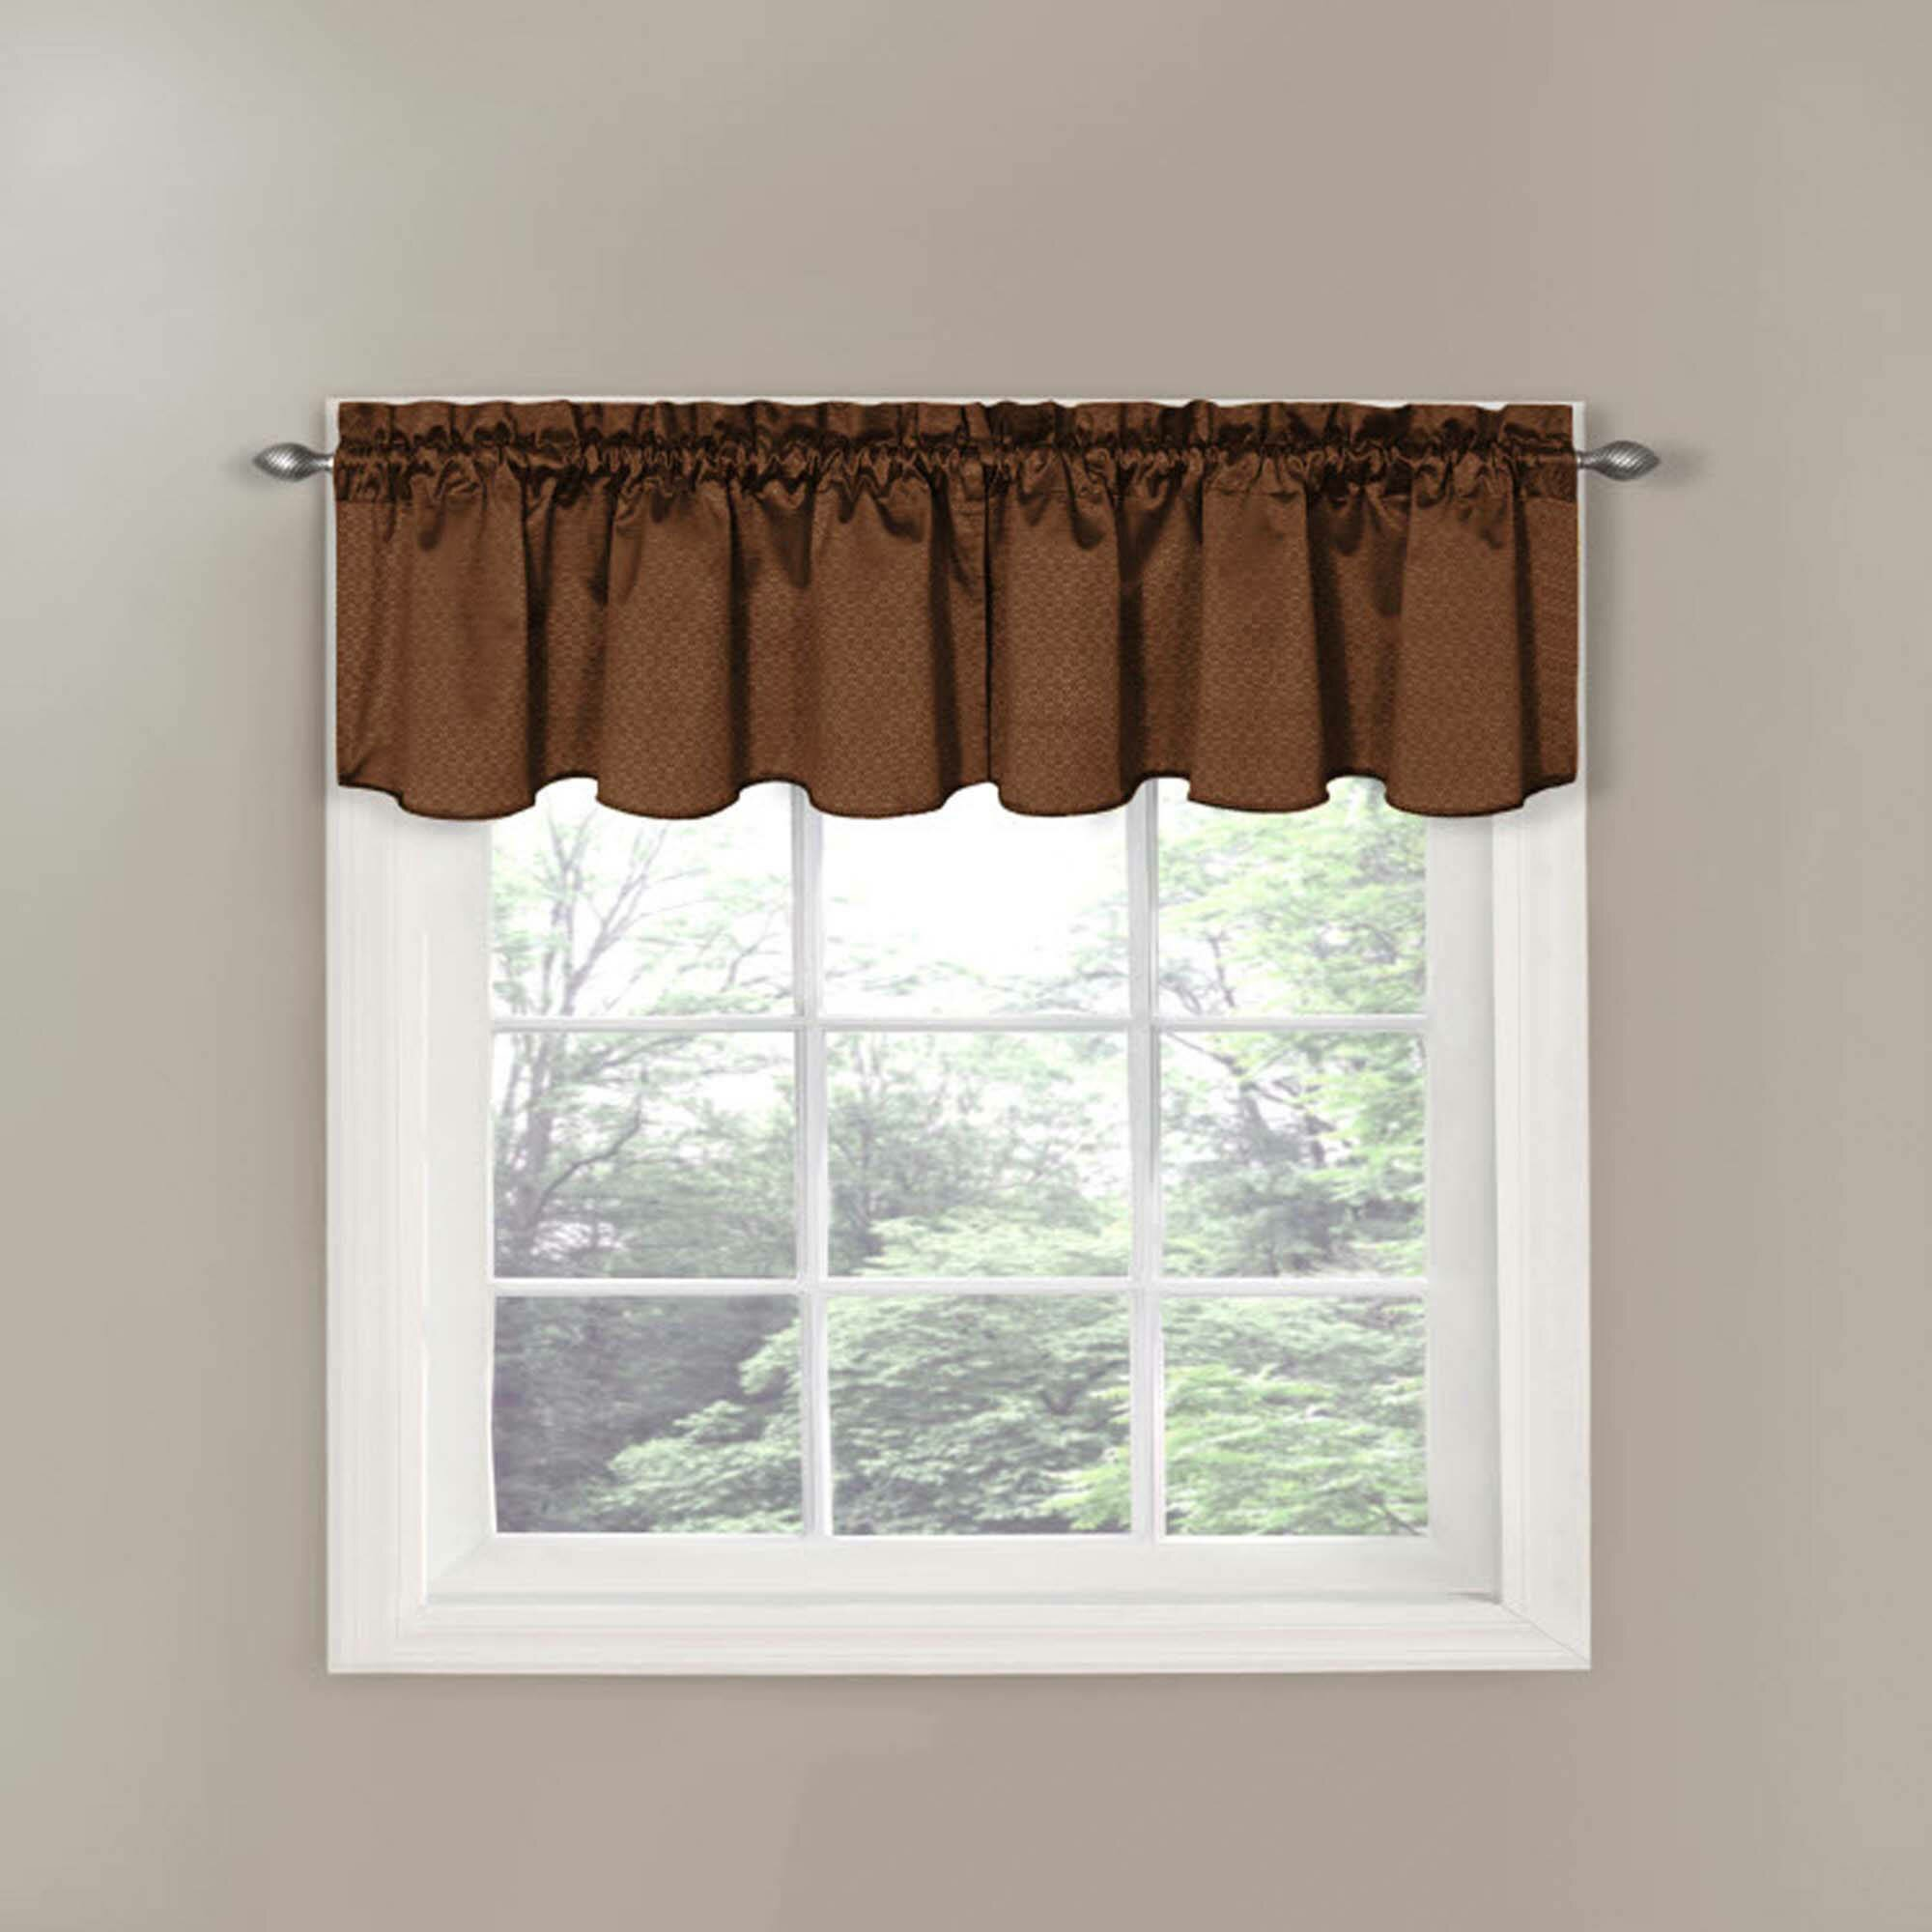 Cute Living Room Valances for Your Home Decorating Ideas: Living Room Valances | Small Valances For Windows | Bedroom Valances For Windows